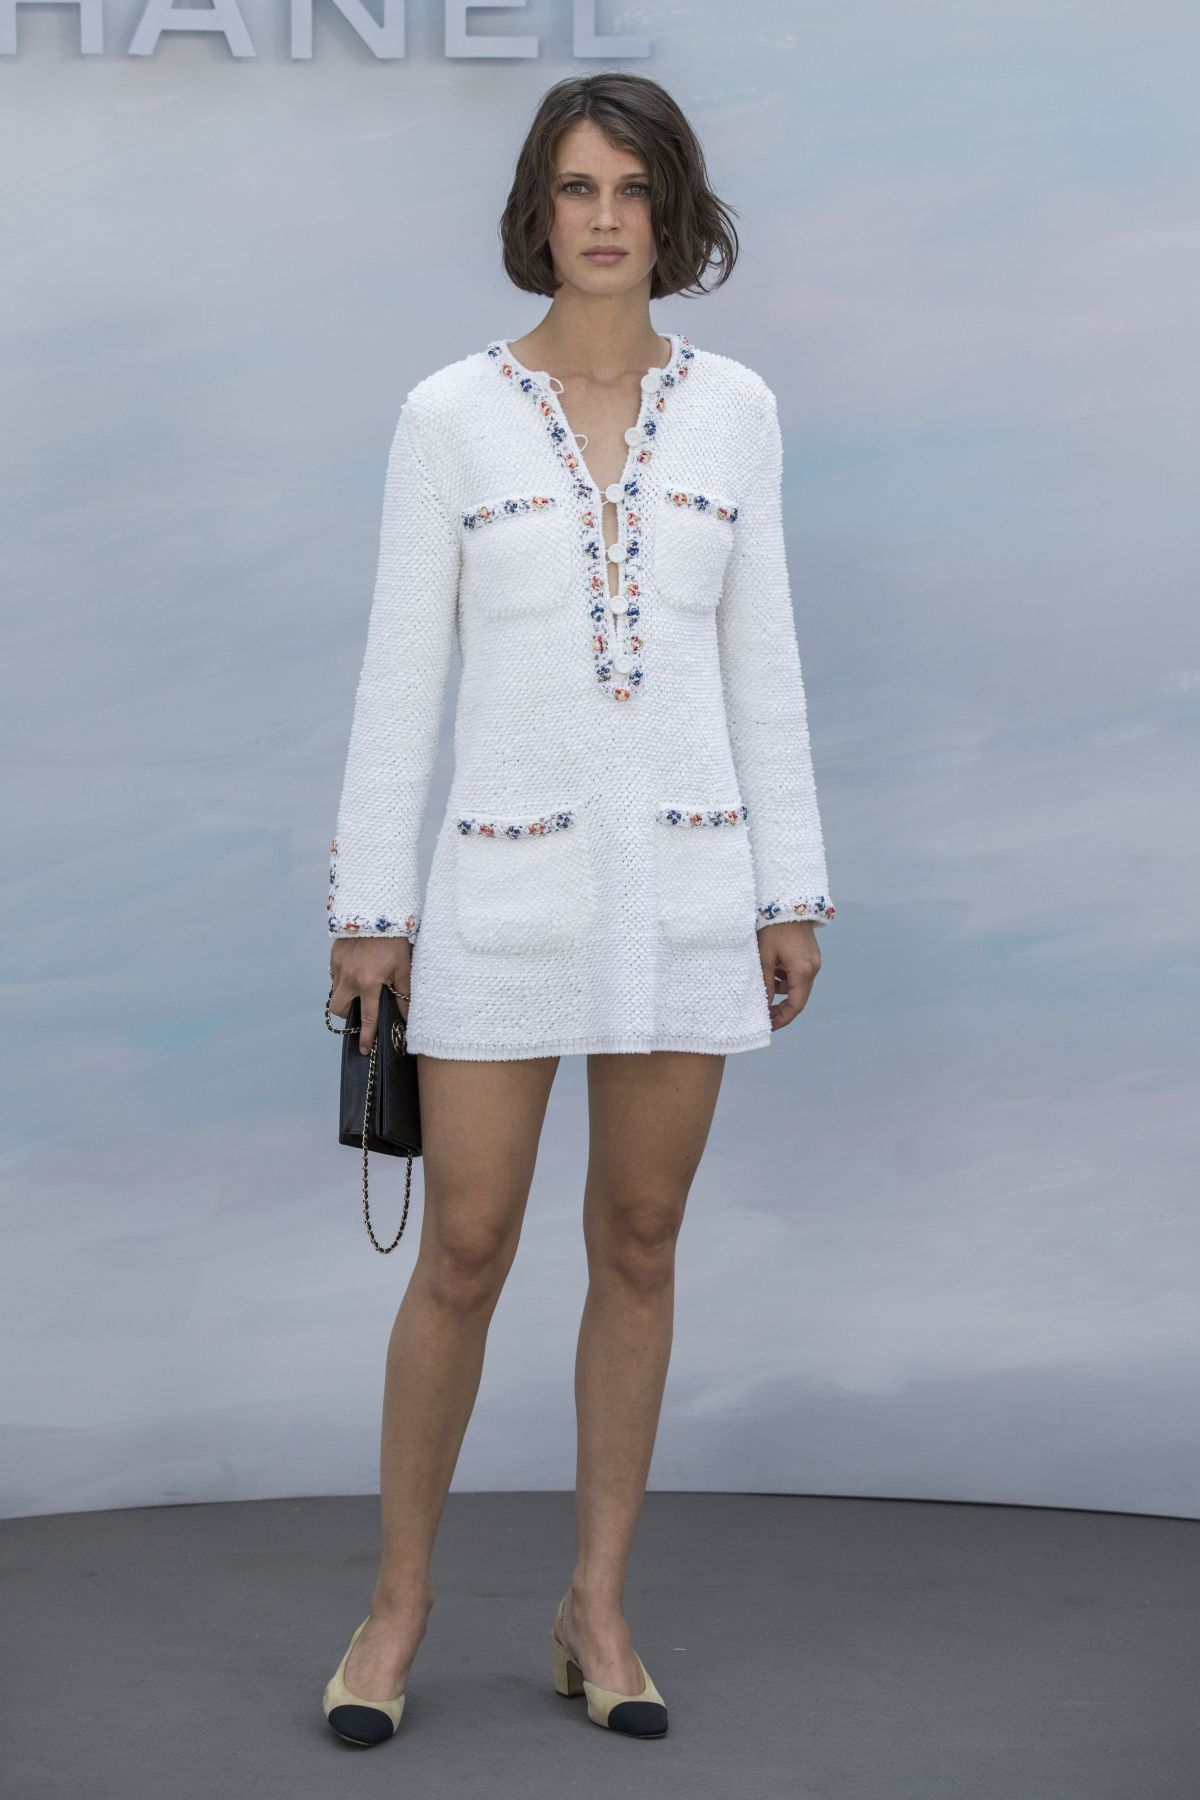 Marine Vacth Attends The Chanel Haute Couture Fall Winter 2018 2019